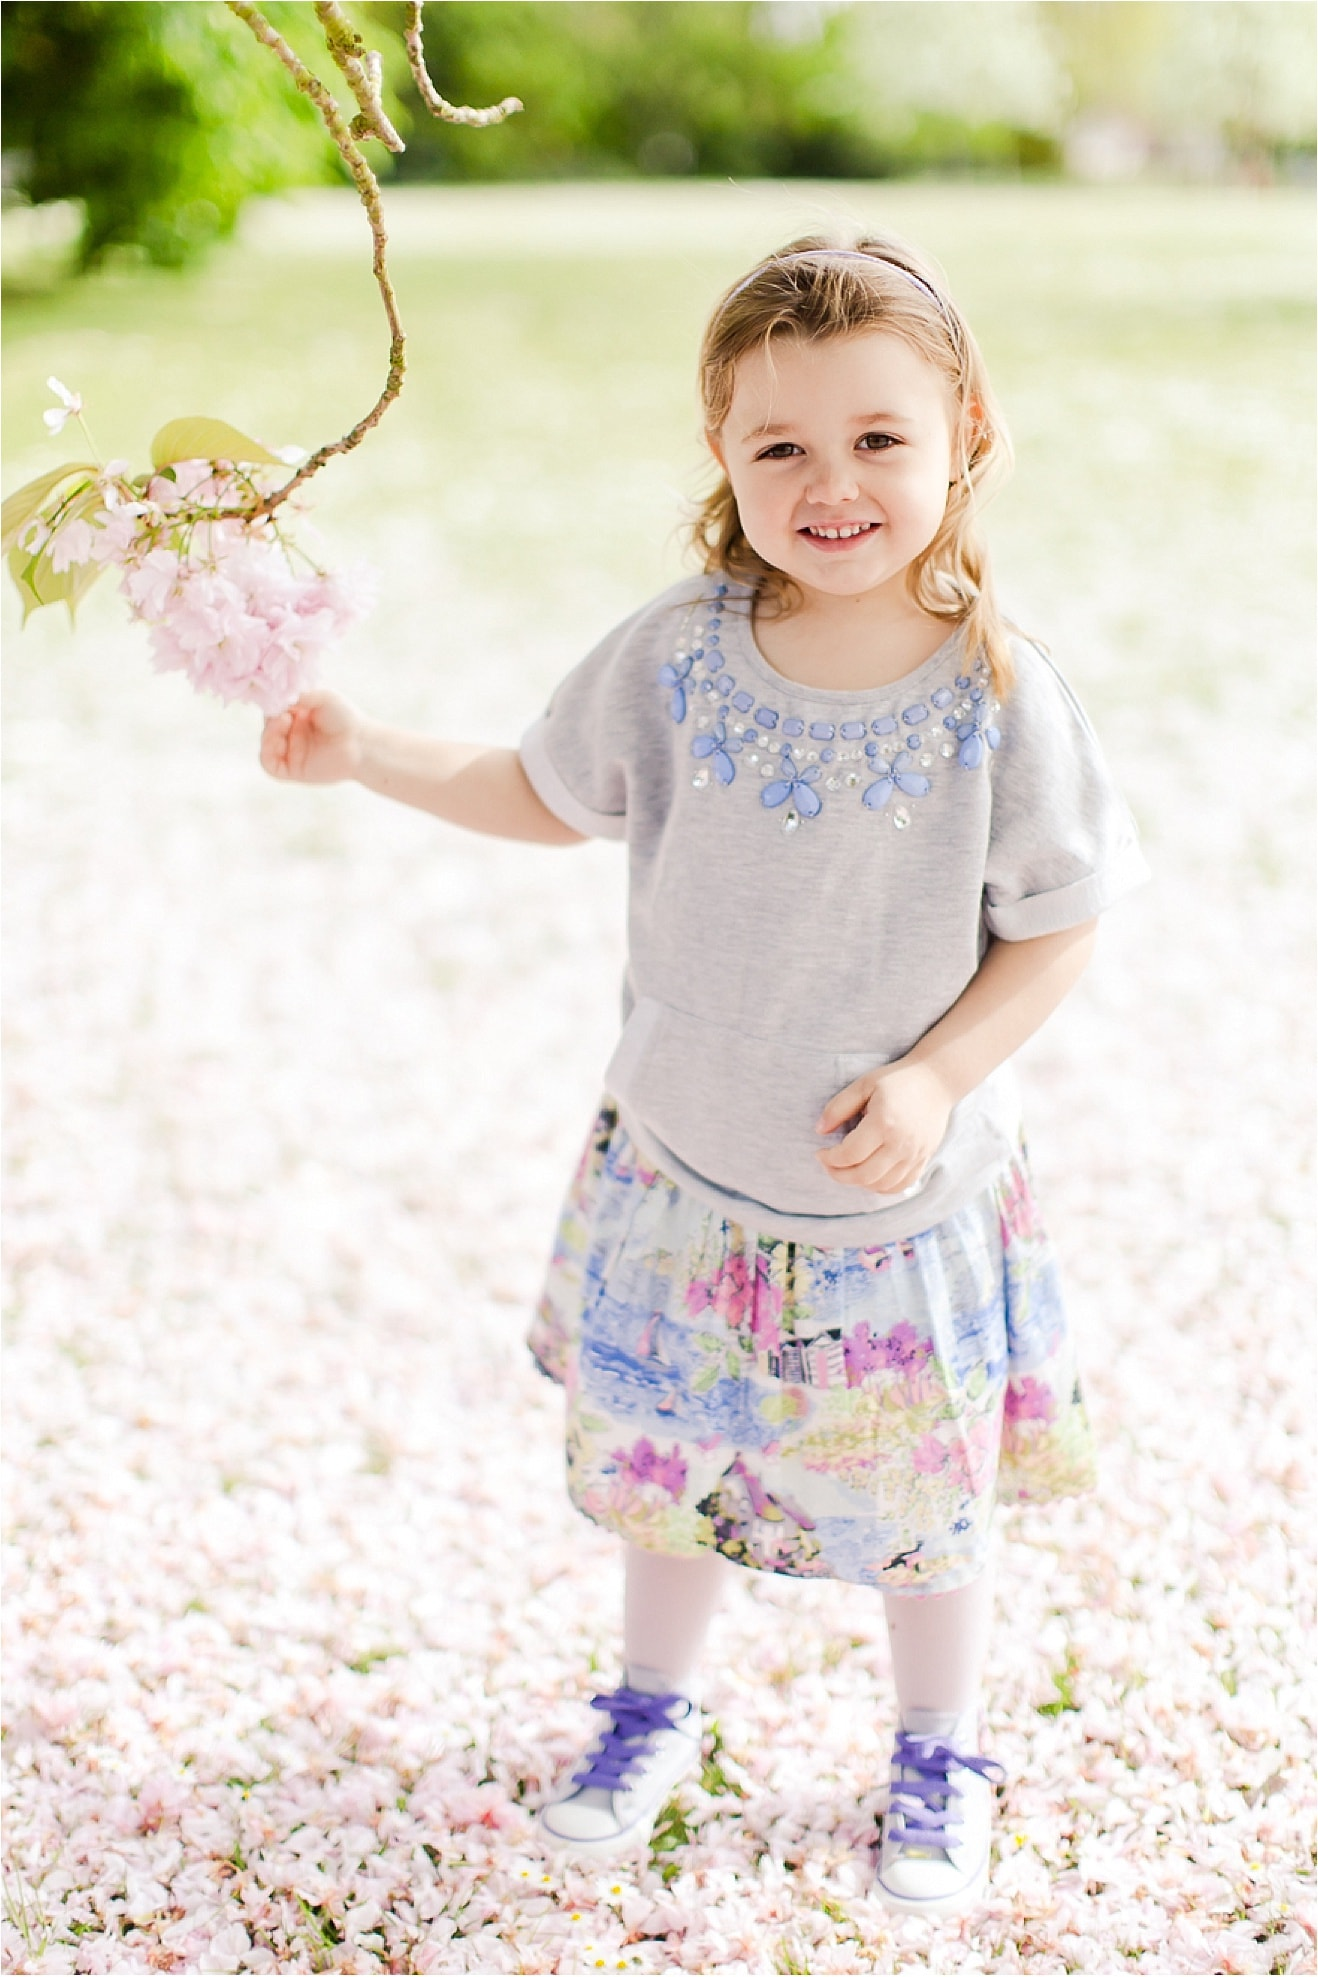 33-mini-session-spring-photography-Eddie-Judd-Photography